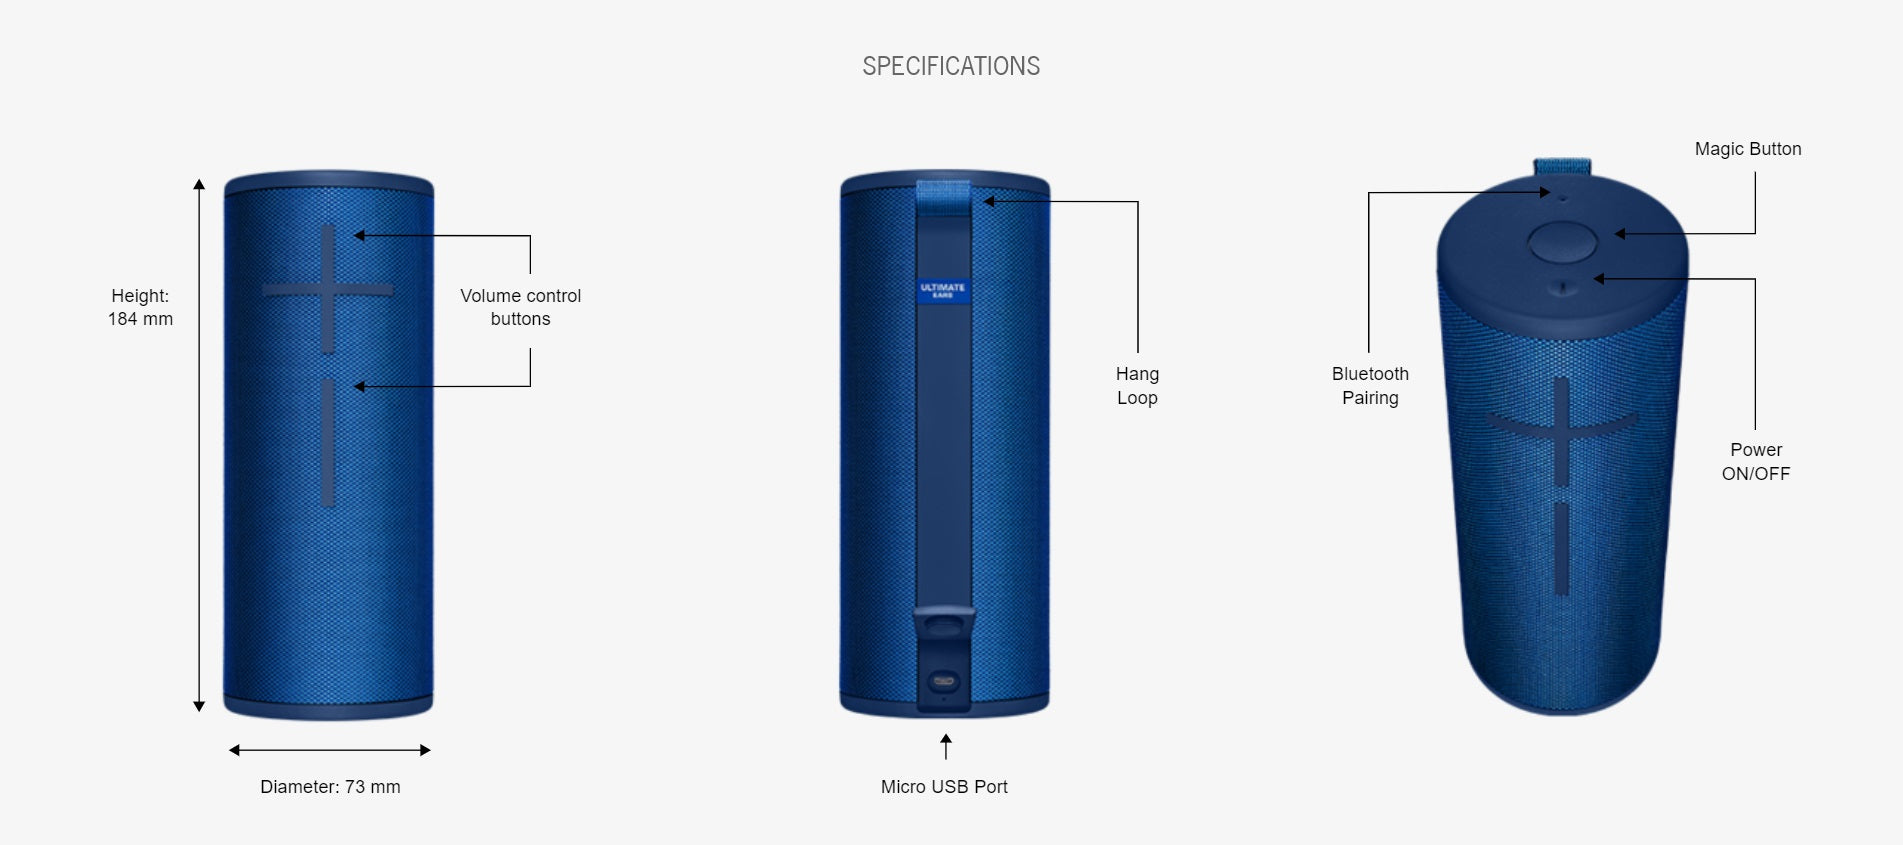 SPECIFICATIONS For Ultimate Ears Boom 3 Wireless Speakers